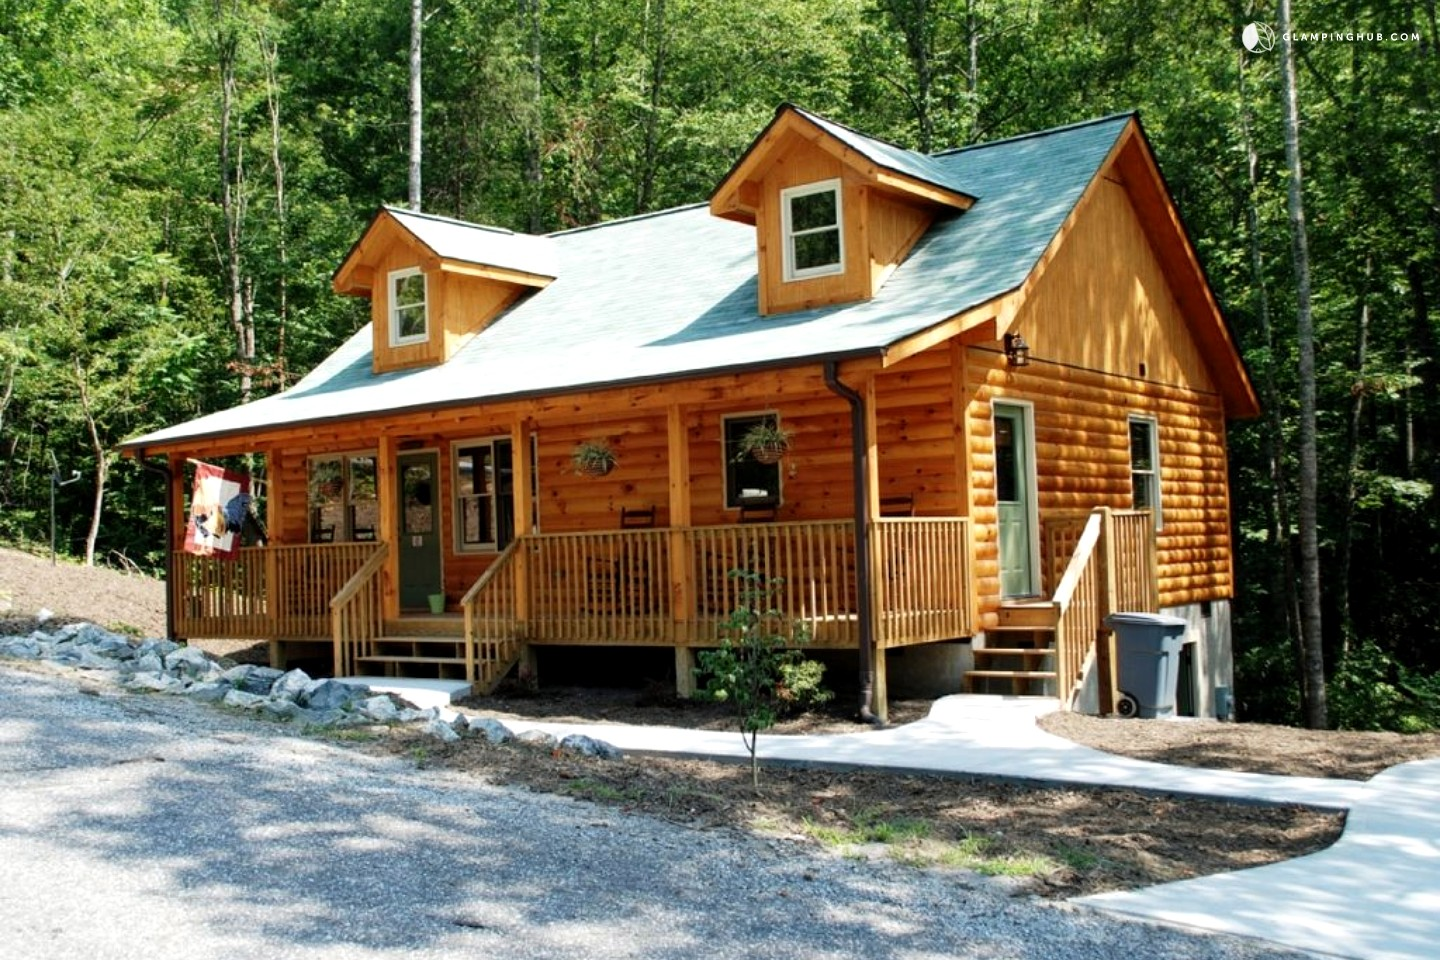 Luxury Cabin Rental near Asheville North Carolina